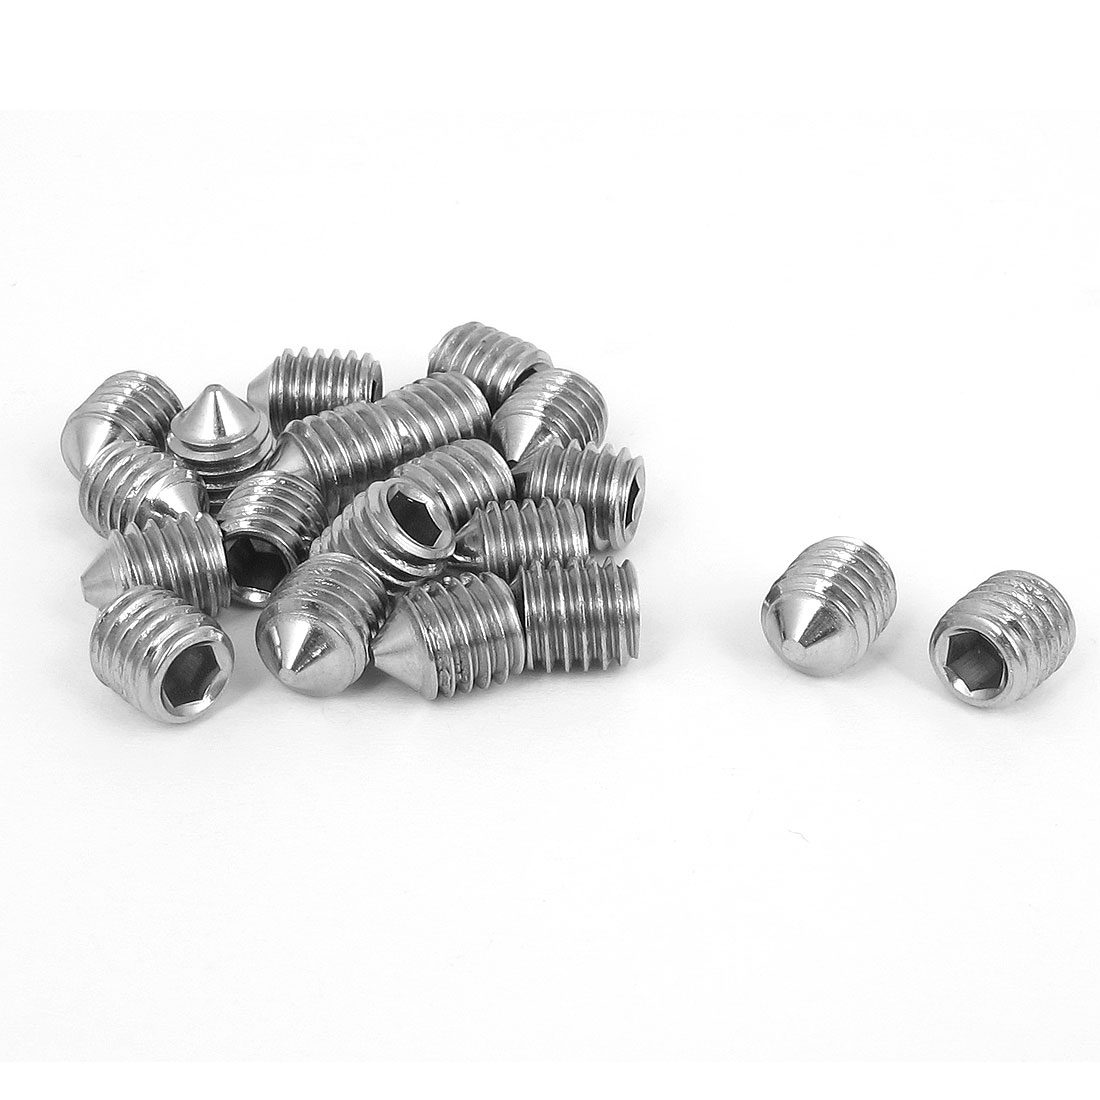 M8x10mm 304 Stainless Steel Cone Point Hexagon Socket Grub Screws 20pcs